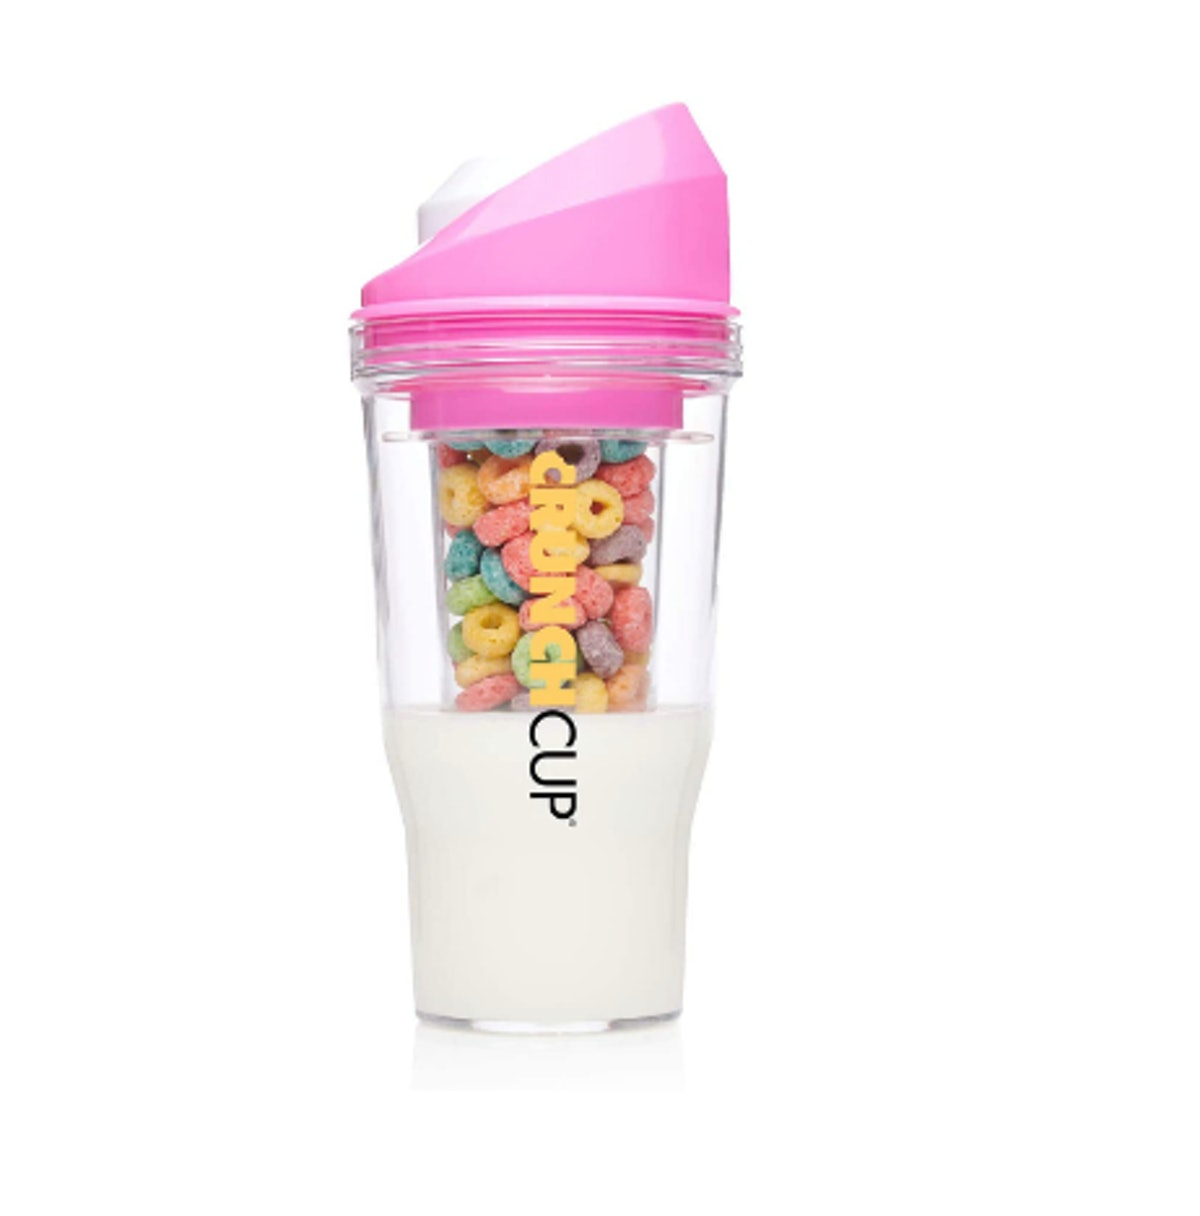 The CrunchCup - Portable Cereal Cup